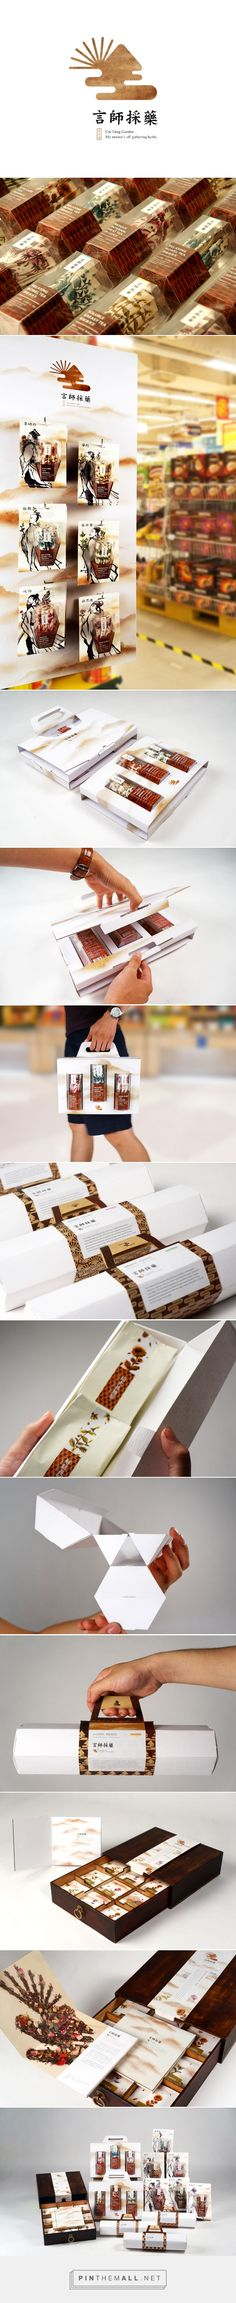 言師採藥 CAI YAO branding and packaging on on Behance curated by Packaging Diva PD. Hopes to inject new brand thinking, the traditional Chinese medicine prescription packaging innovation.